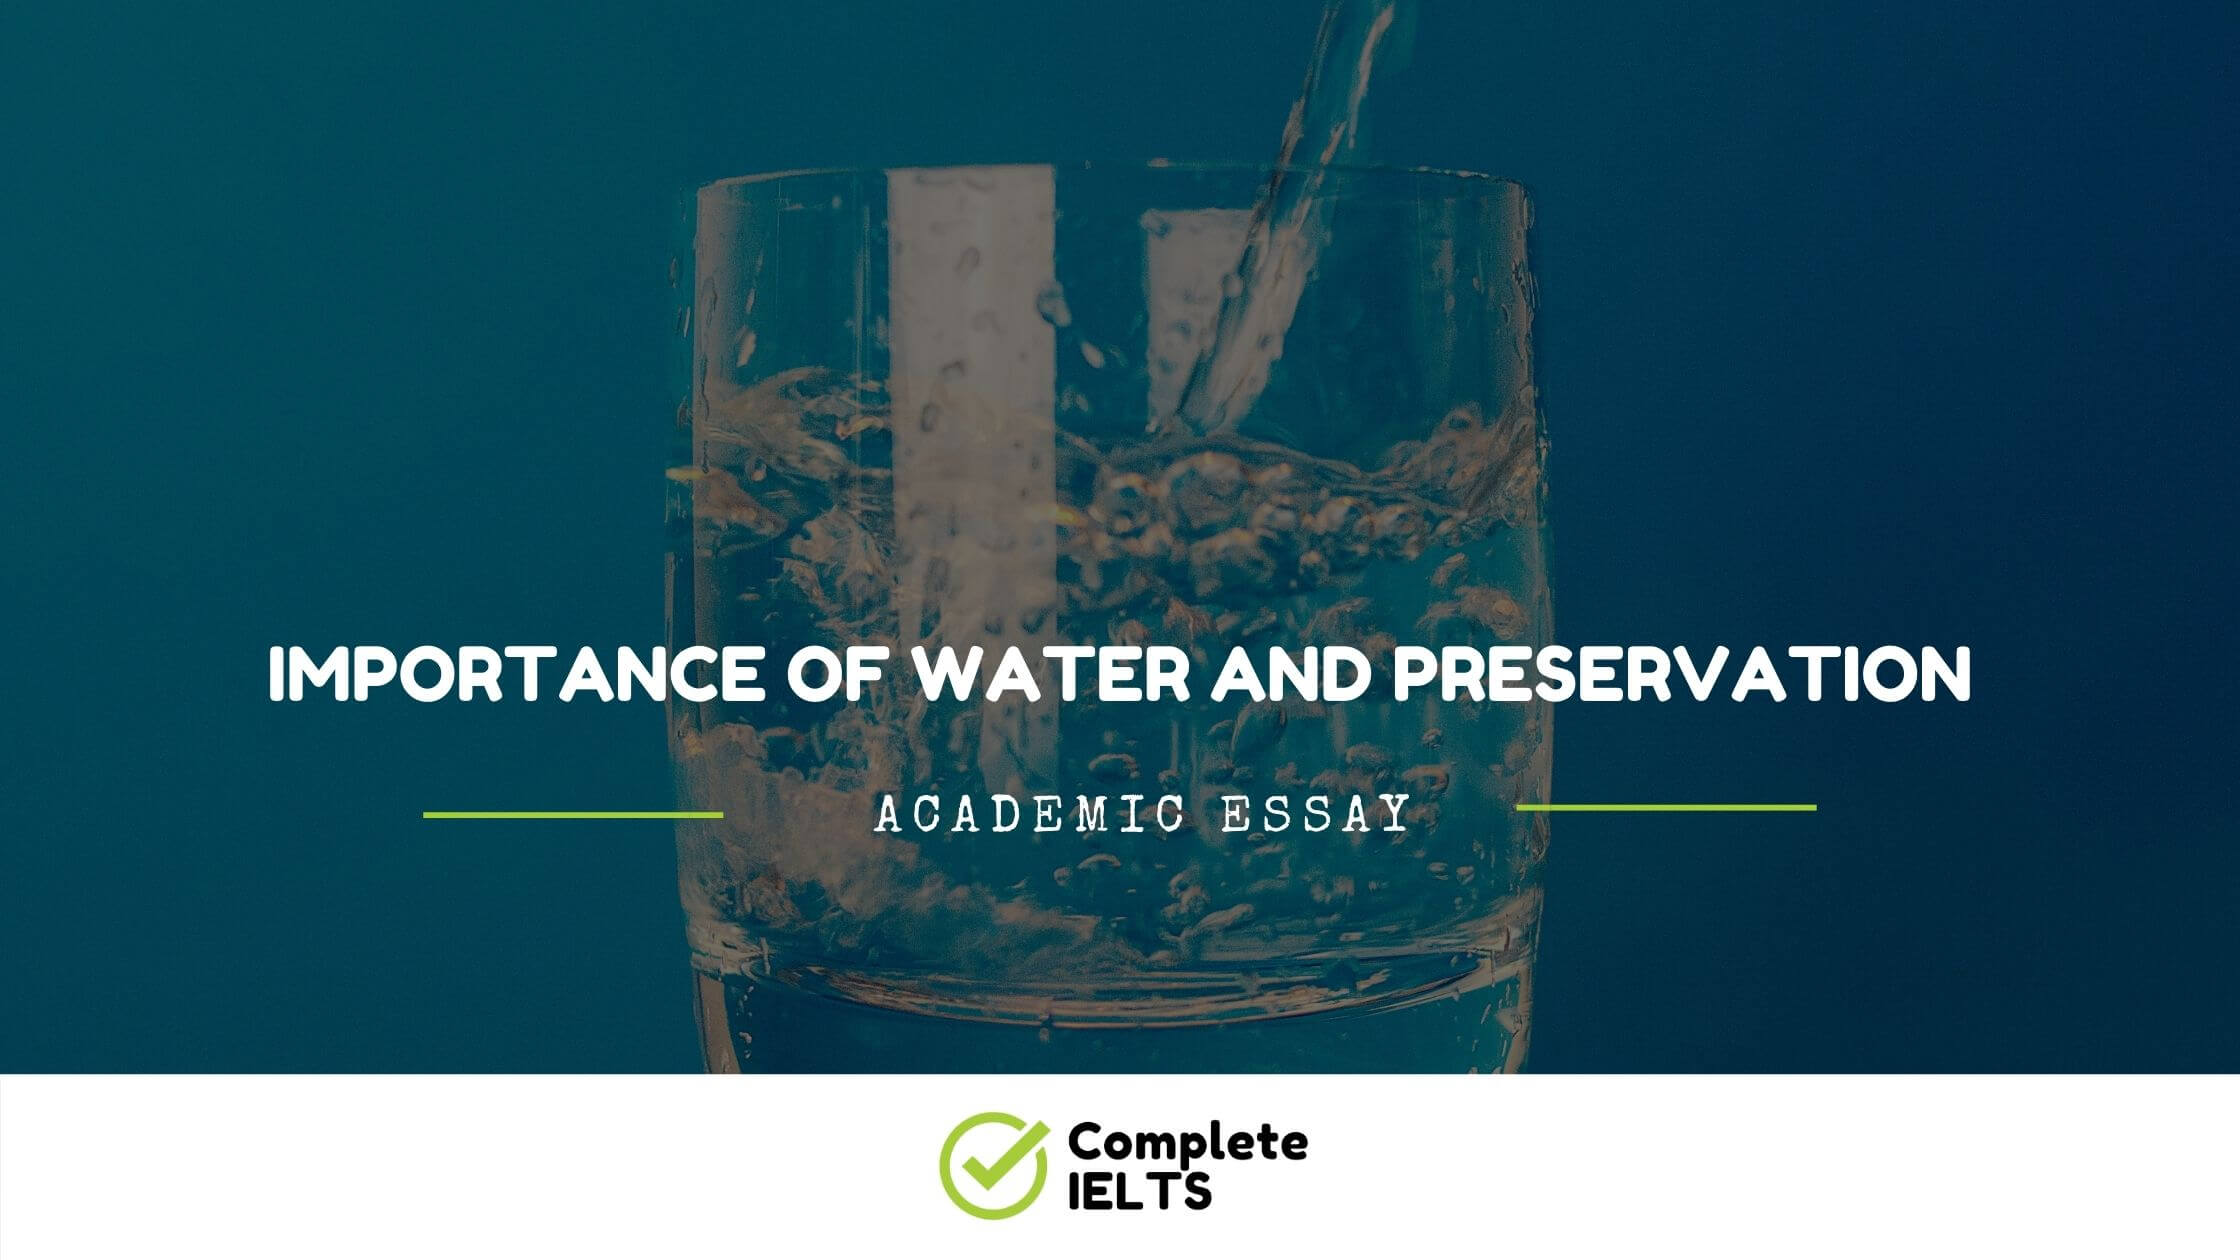 Essay on Importance of water and preservation